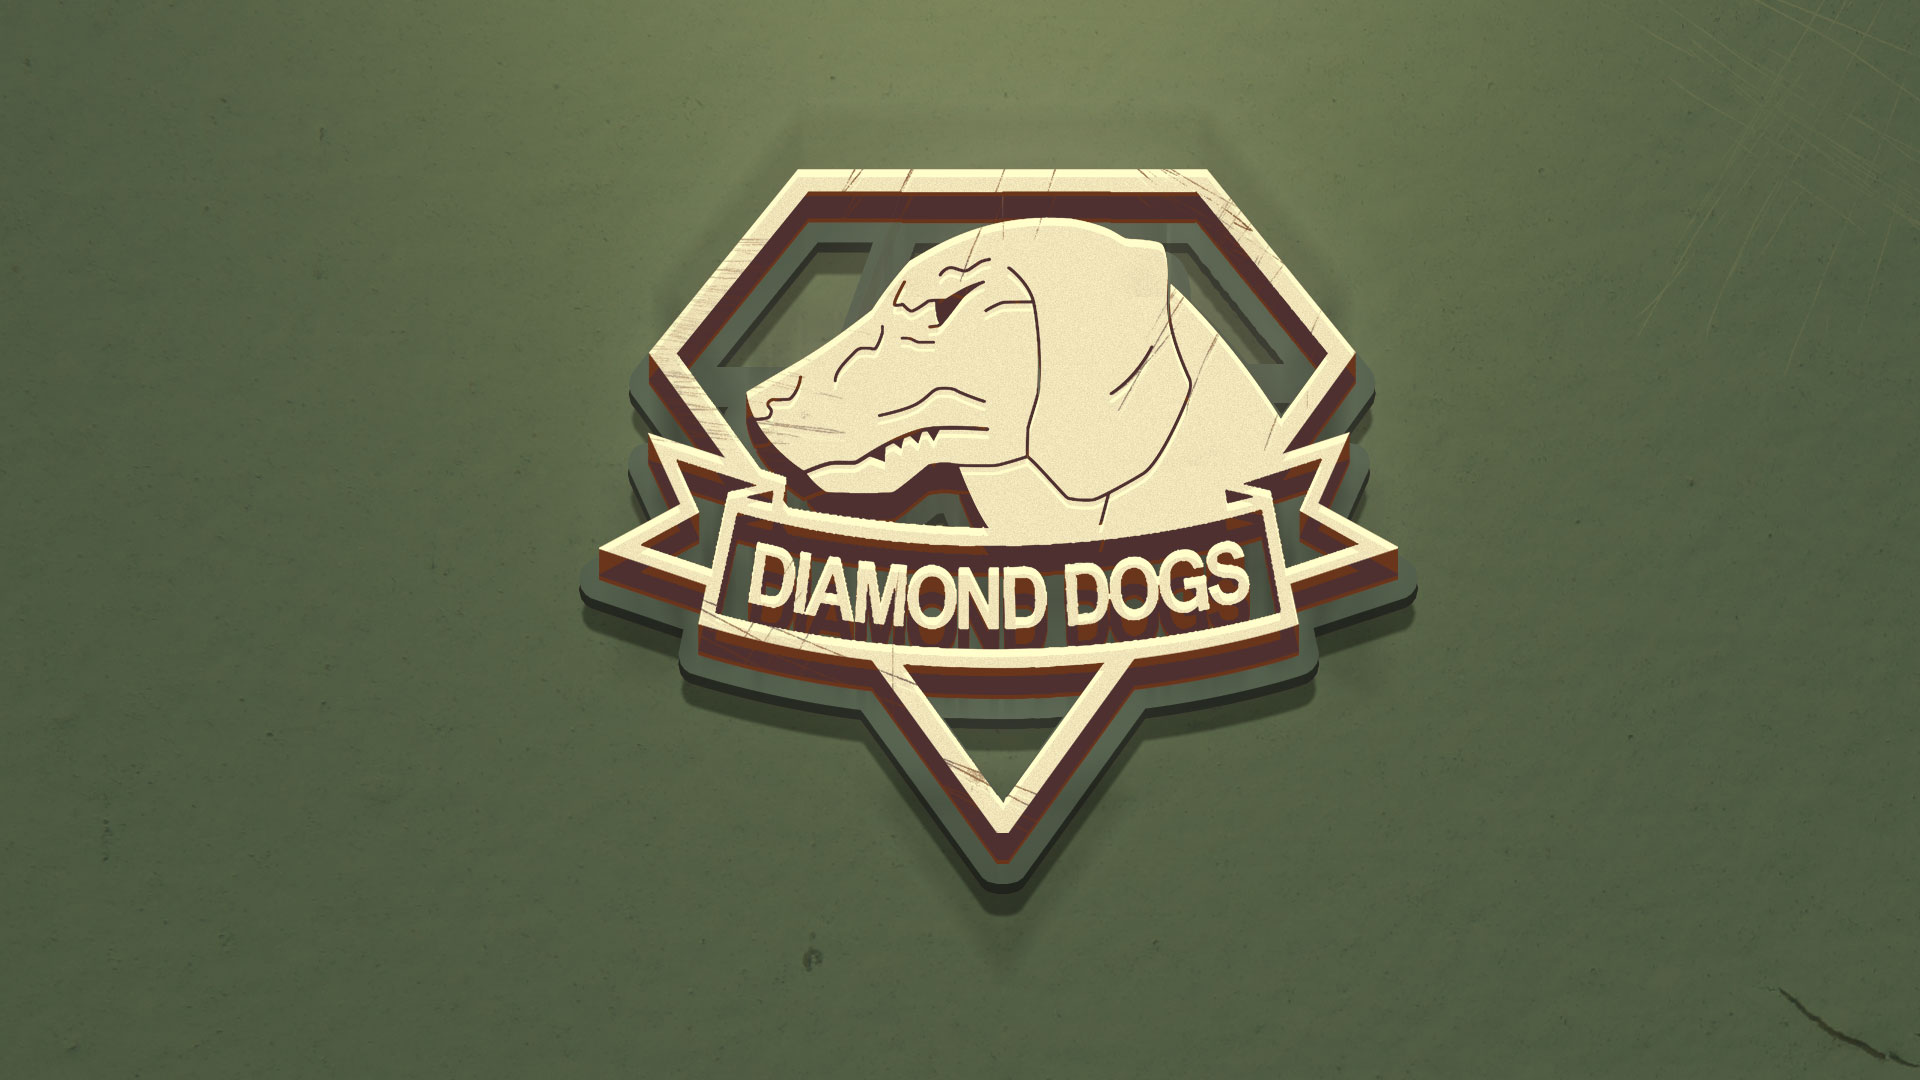 diamonds for dogs